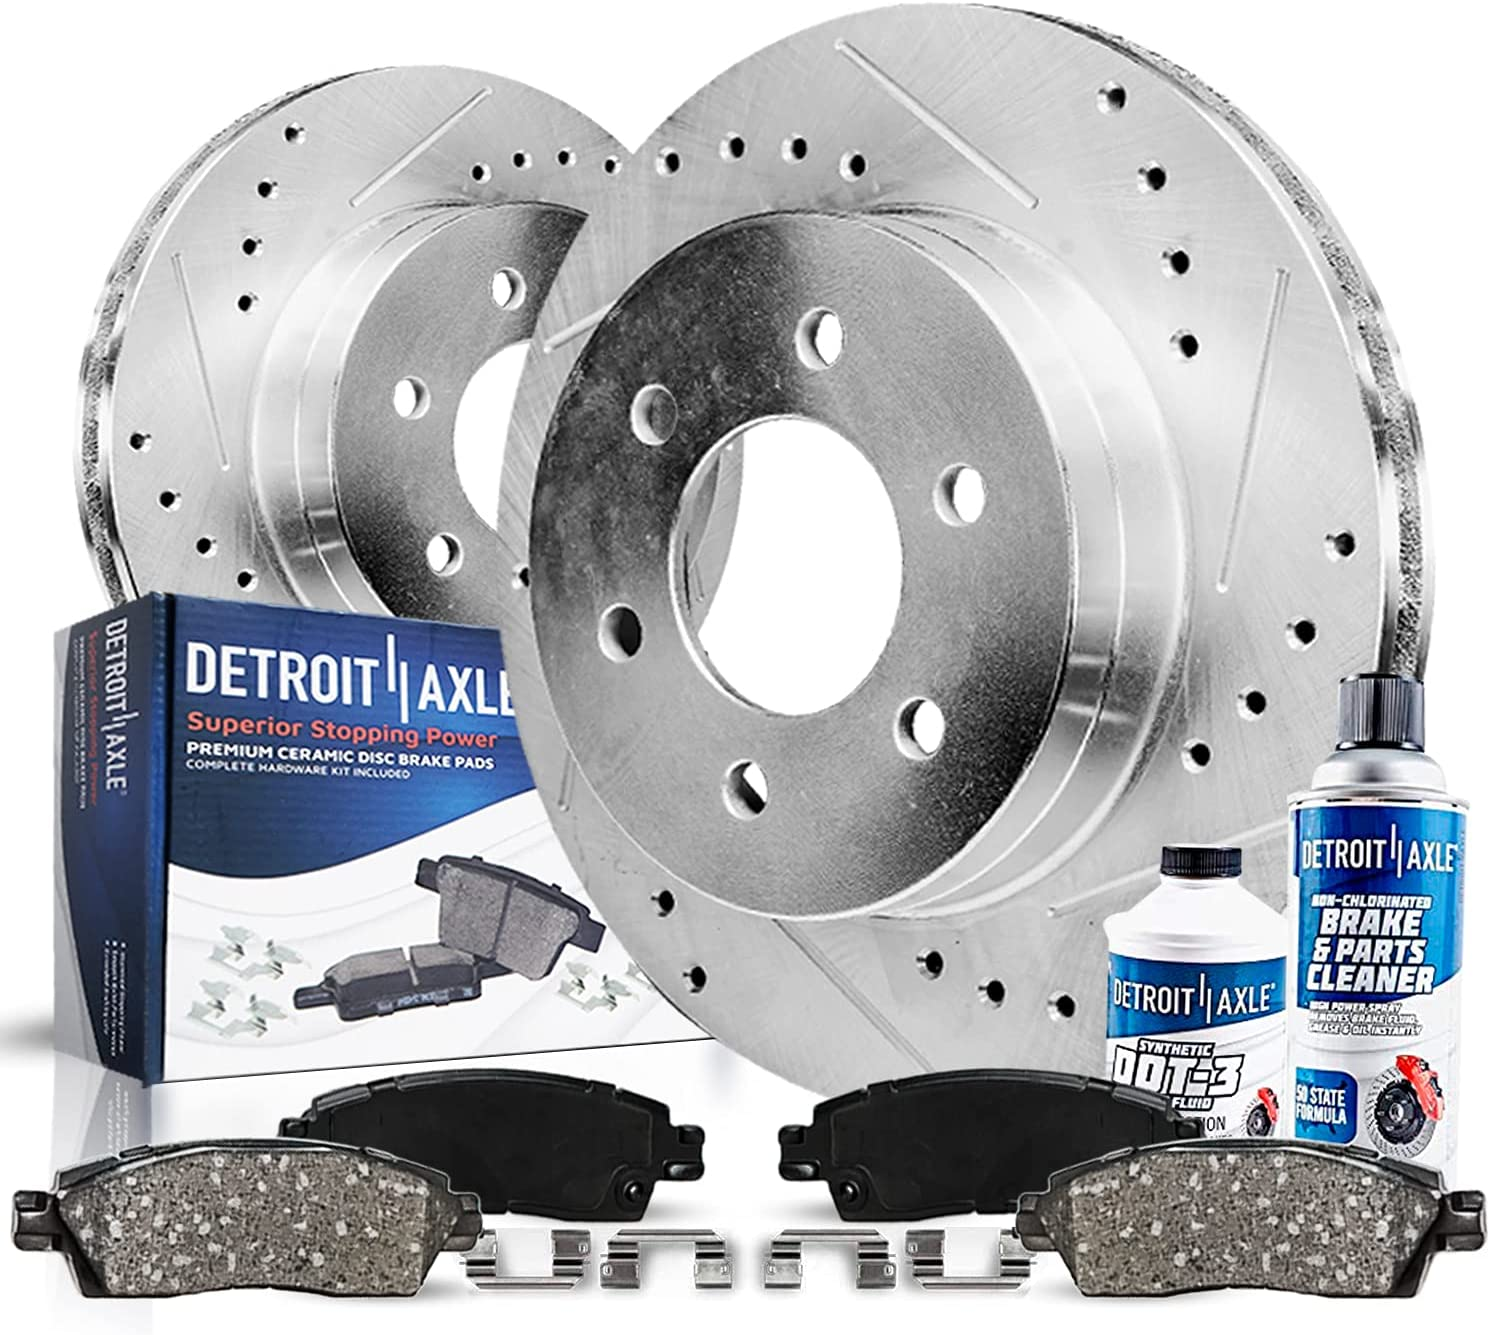 Detroit Axle - 319mm Front Drilled Ceramic mart Slotted + Br Special price Rotors